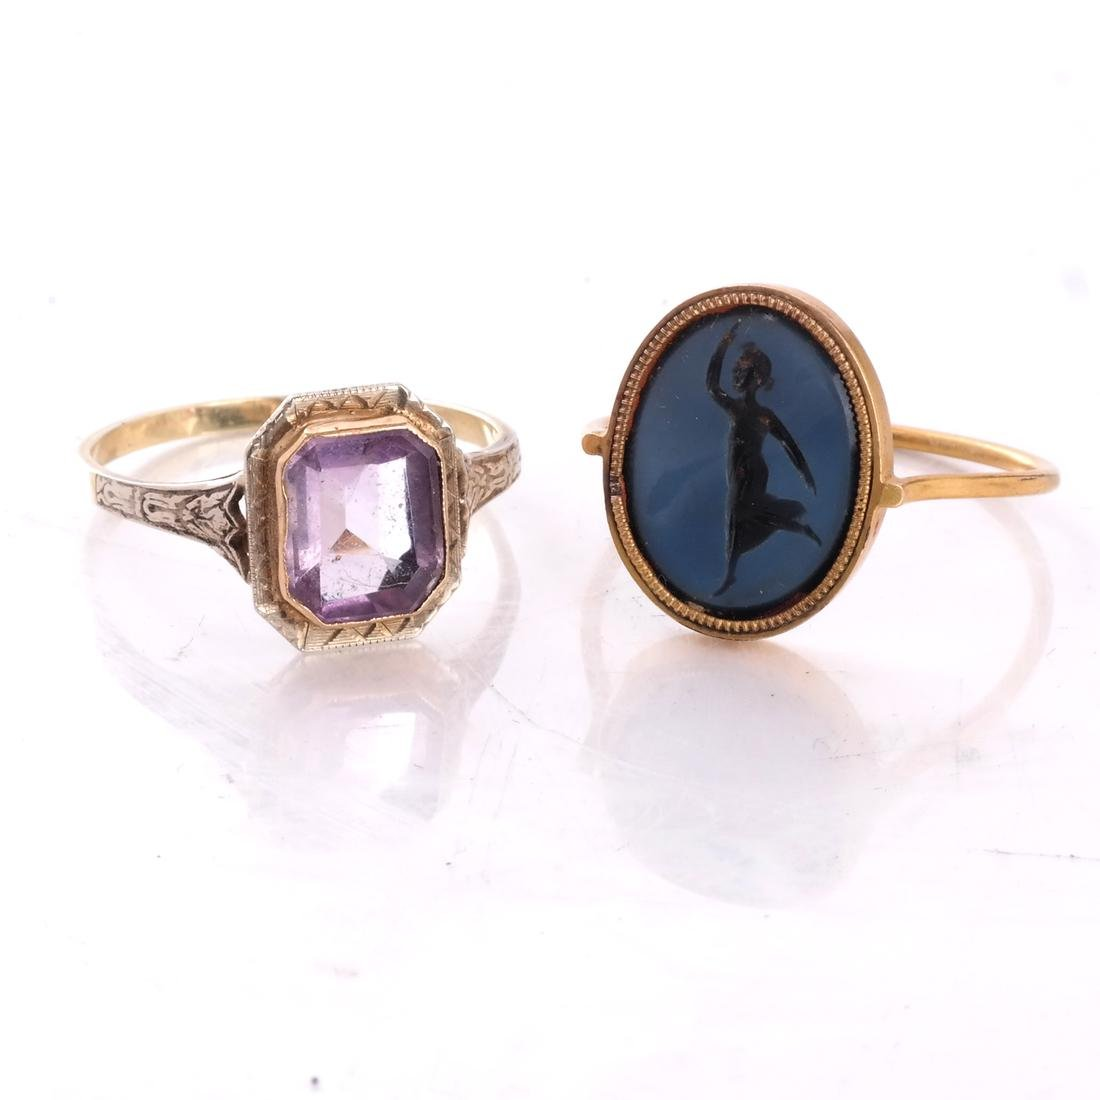 Roman 19th C. Intaglio Ring, and Another